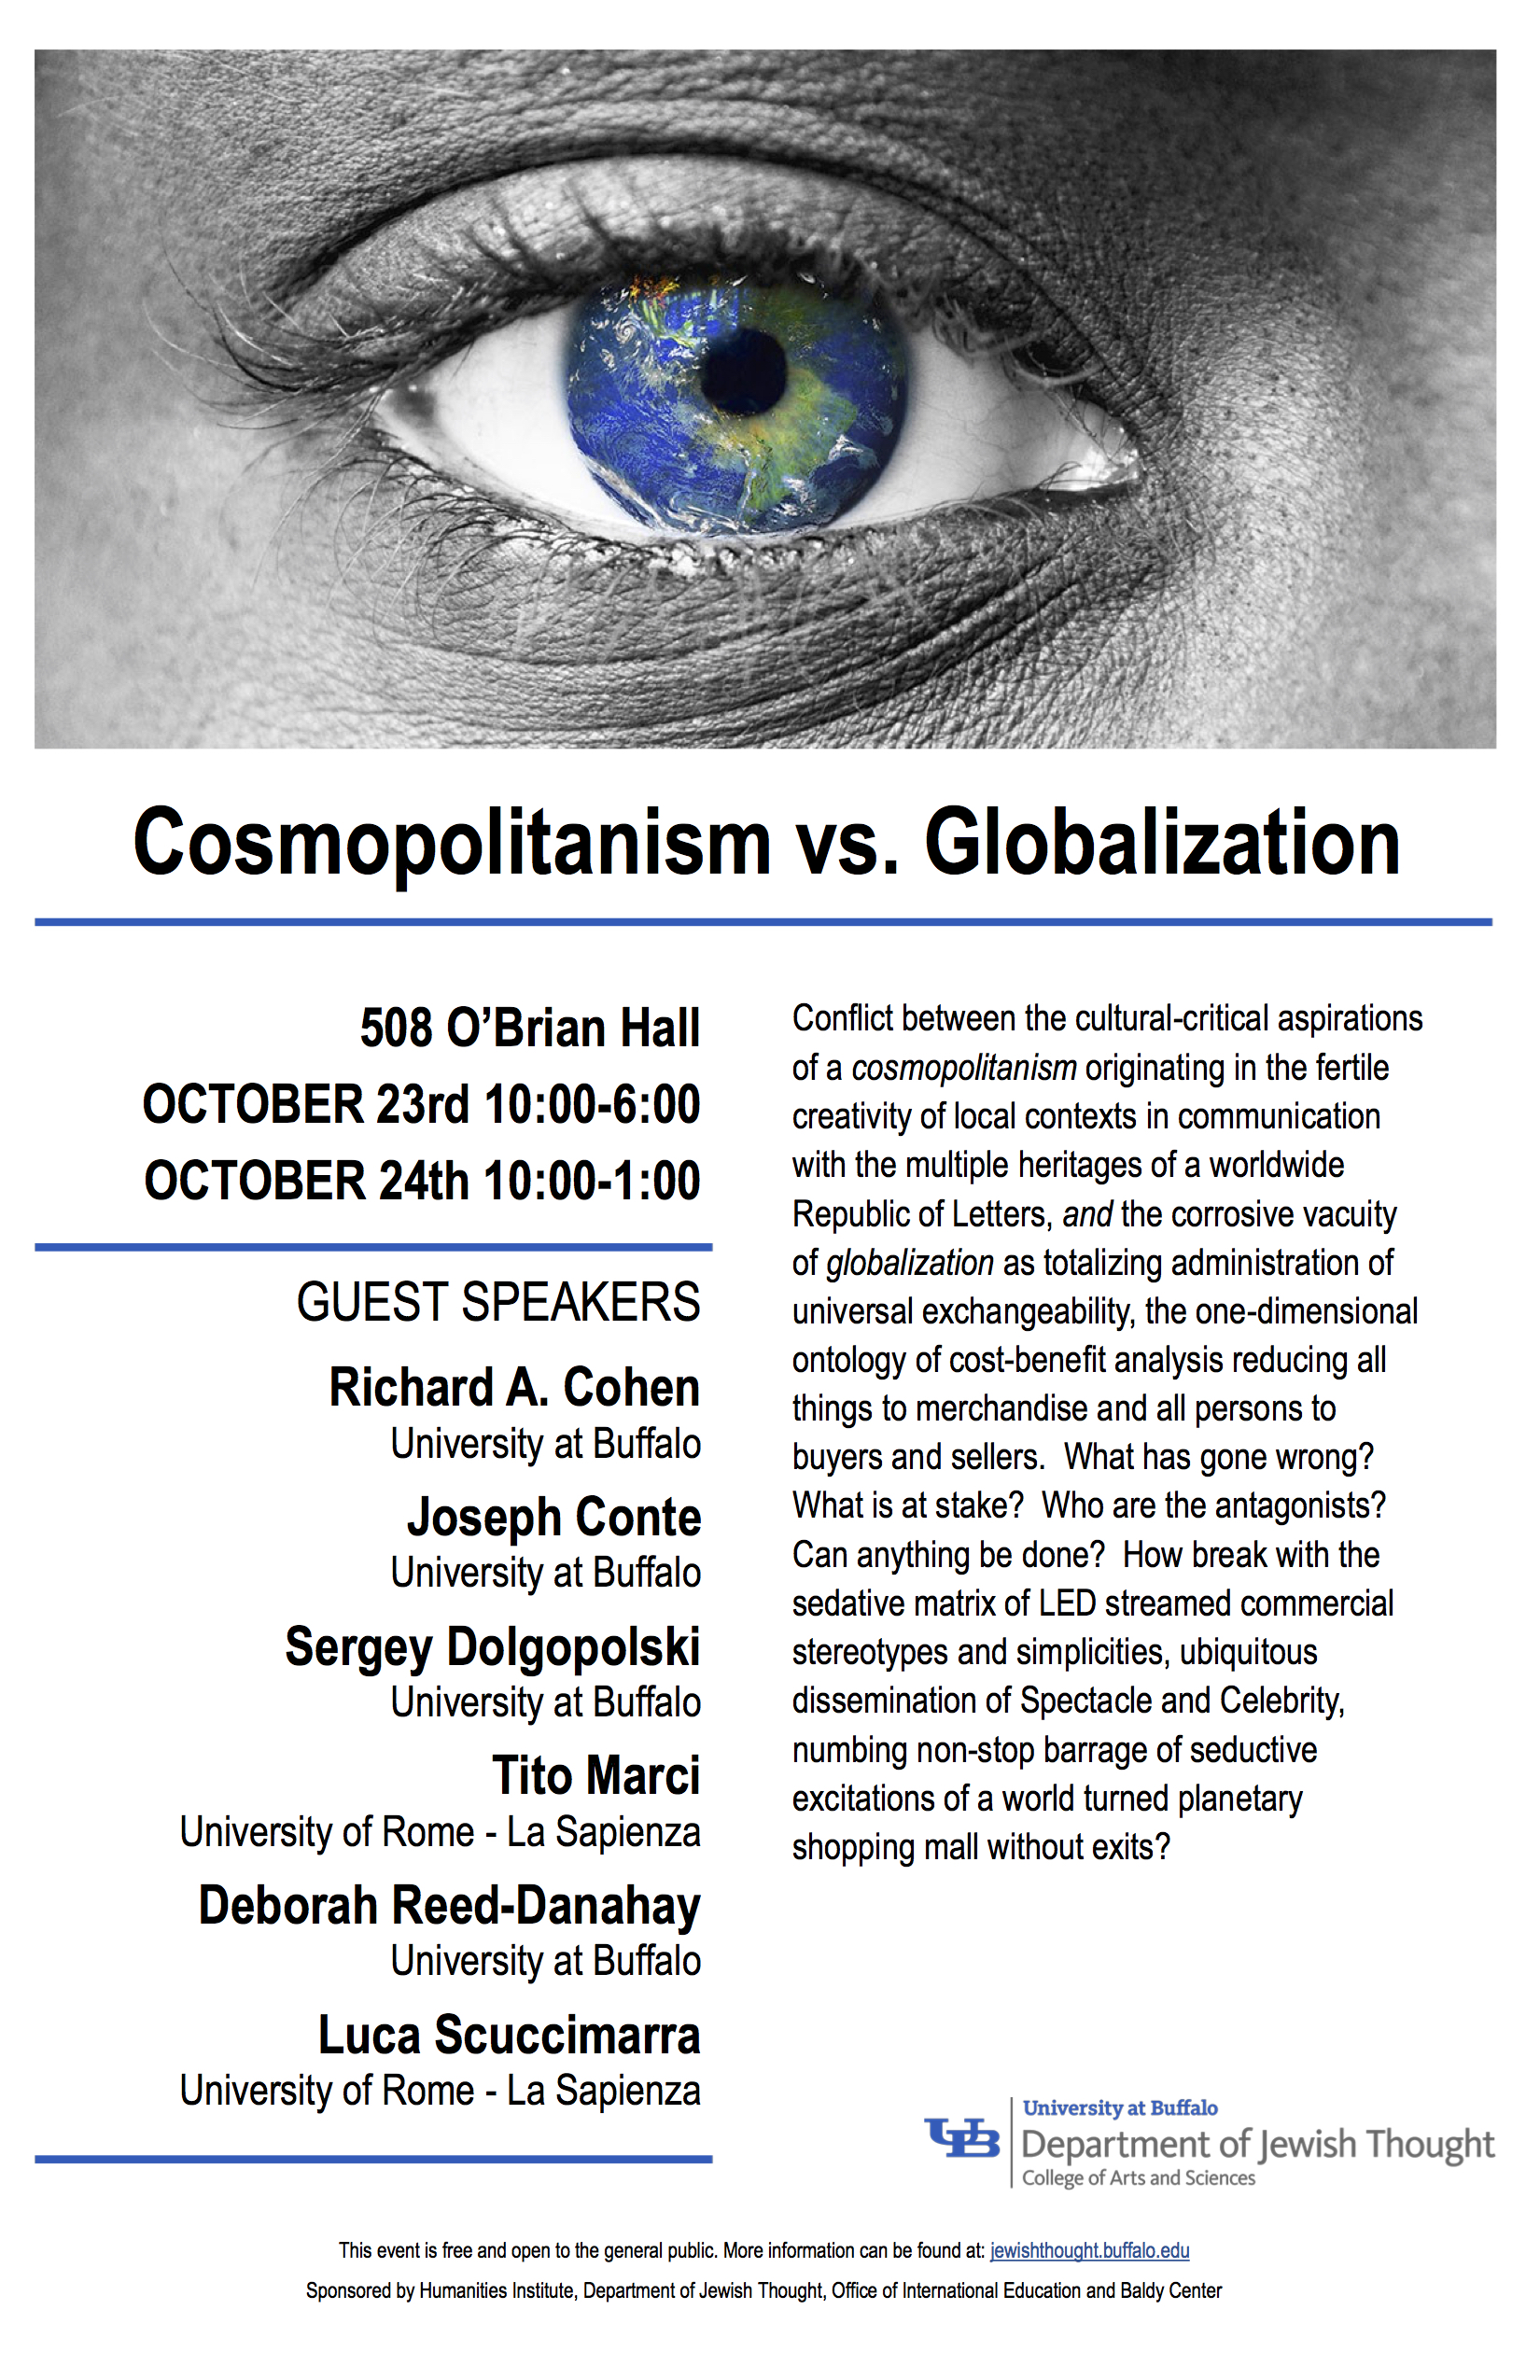 Cosmopolitanism Conference